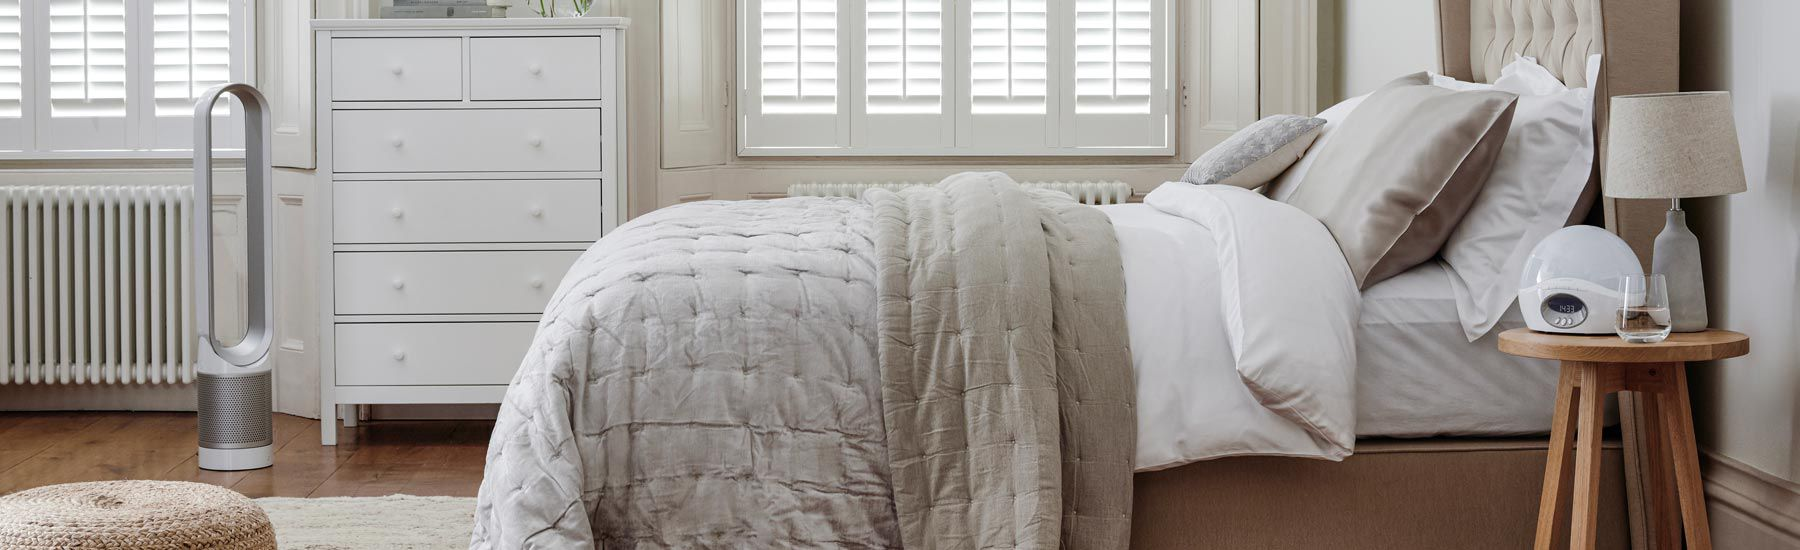 Choosing The Right Bed Linen